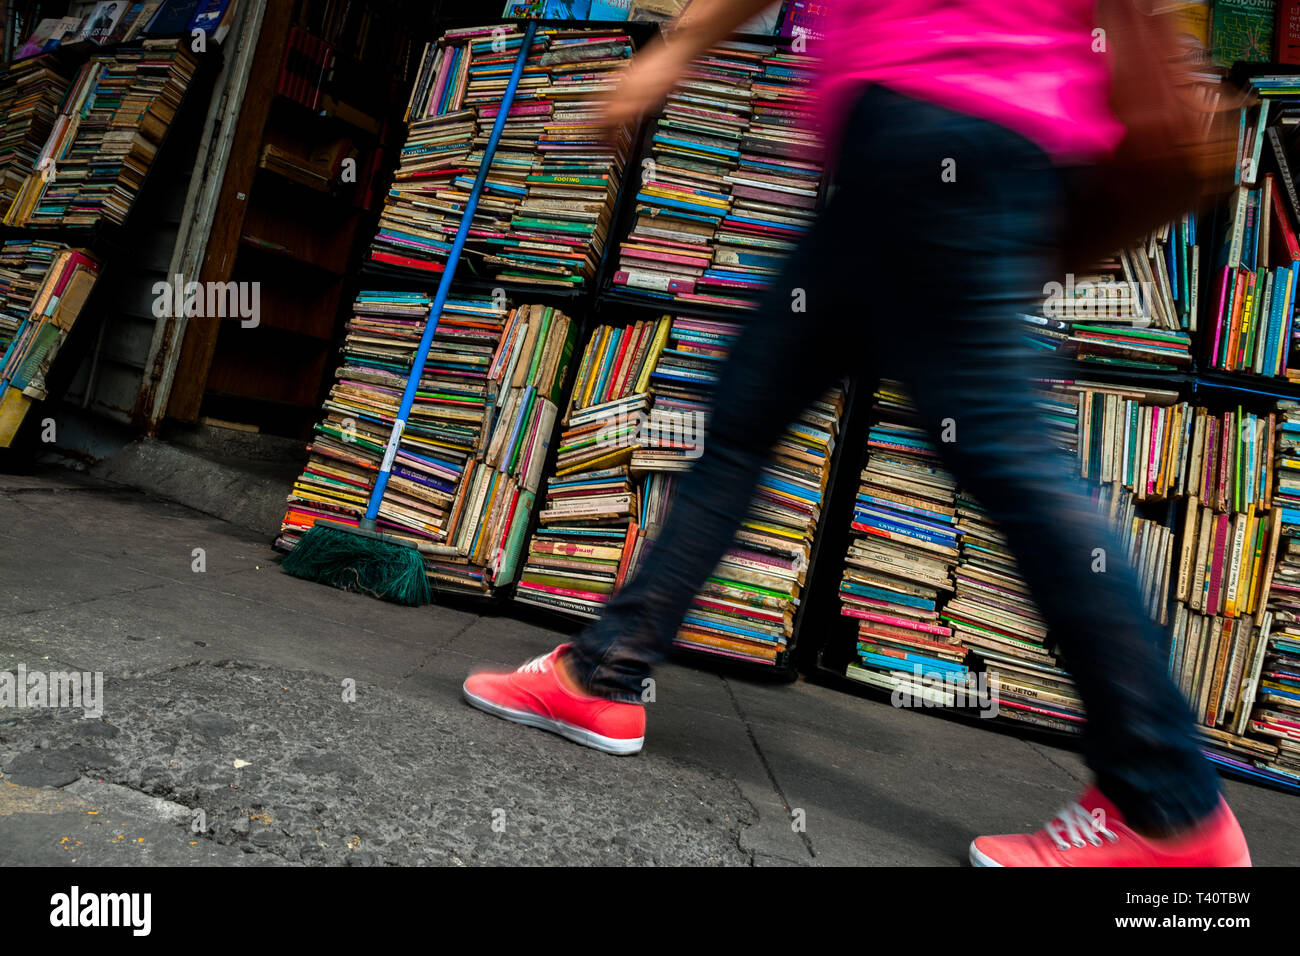 A Salvadoran woman walks along hundreds of used books stacked in boxes on the street in a secondhand bookshop in San Salvador, El Salvador. Stock Photo